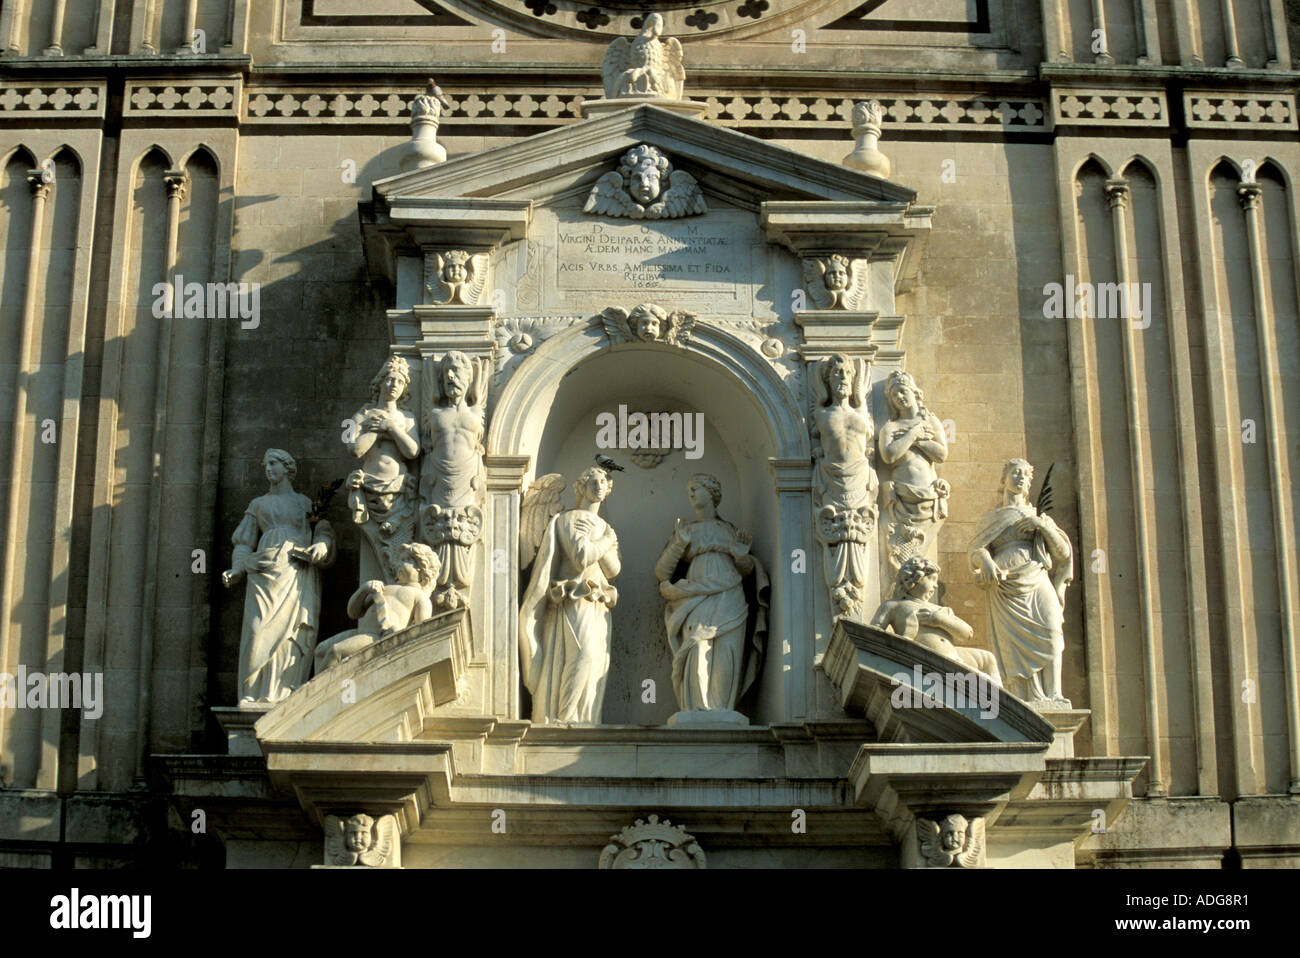 Particular of fa�ade Cathedral Acireale Sicily Italy - Stock Image